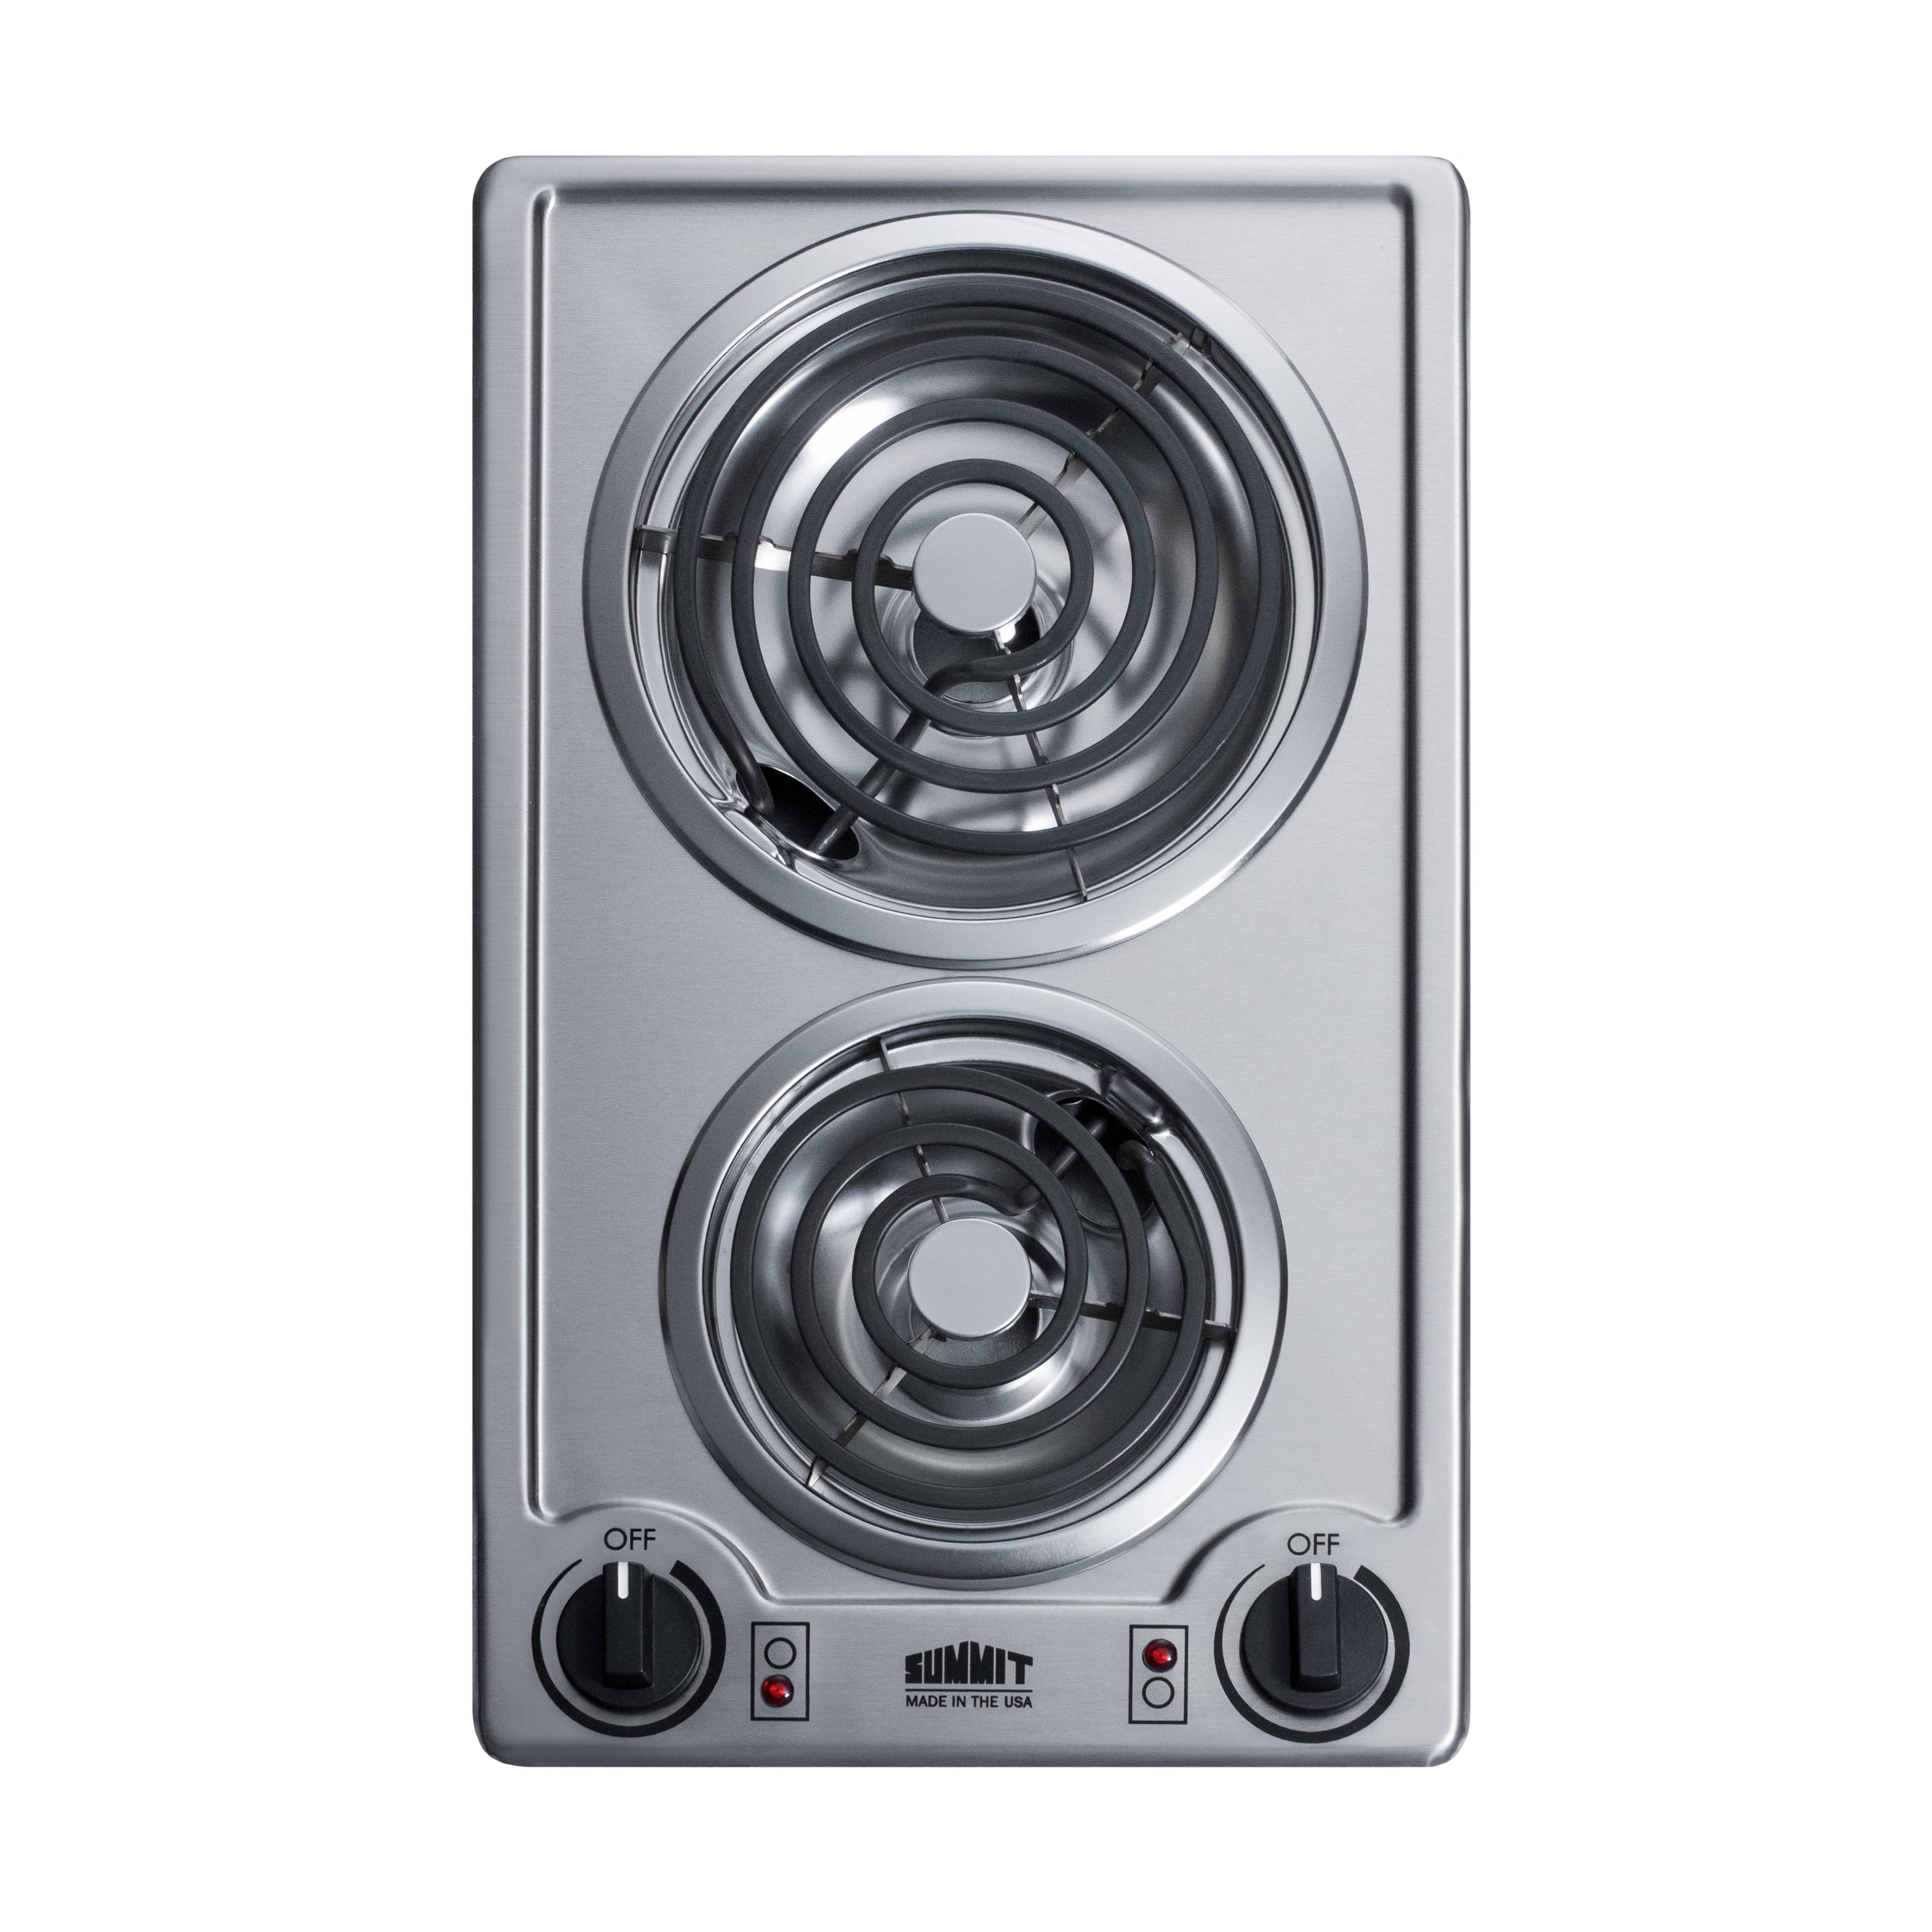 Summit Appliance CCE213SS hotplate, built-in, electric